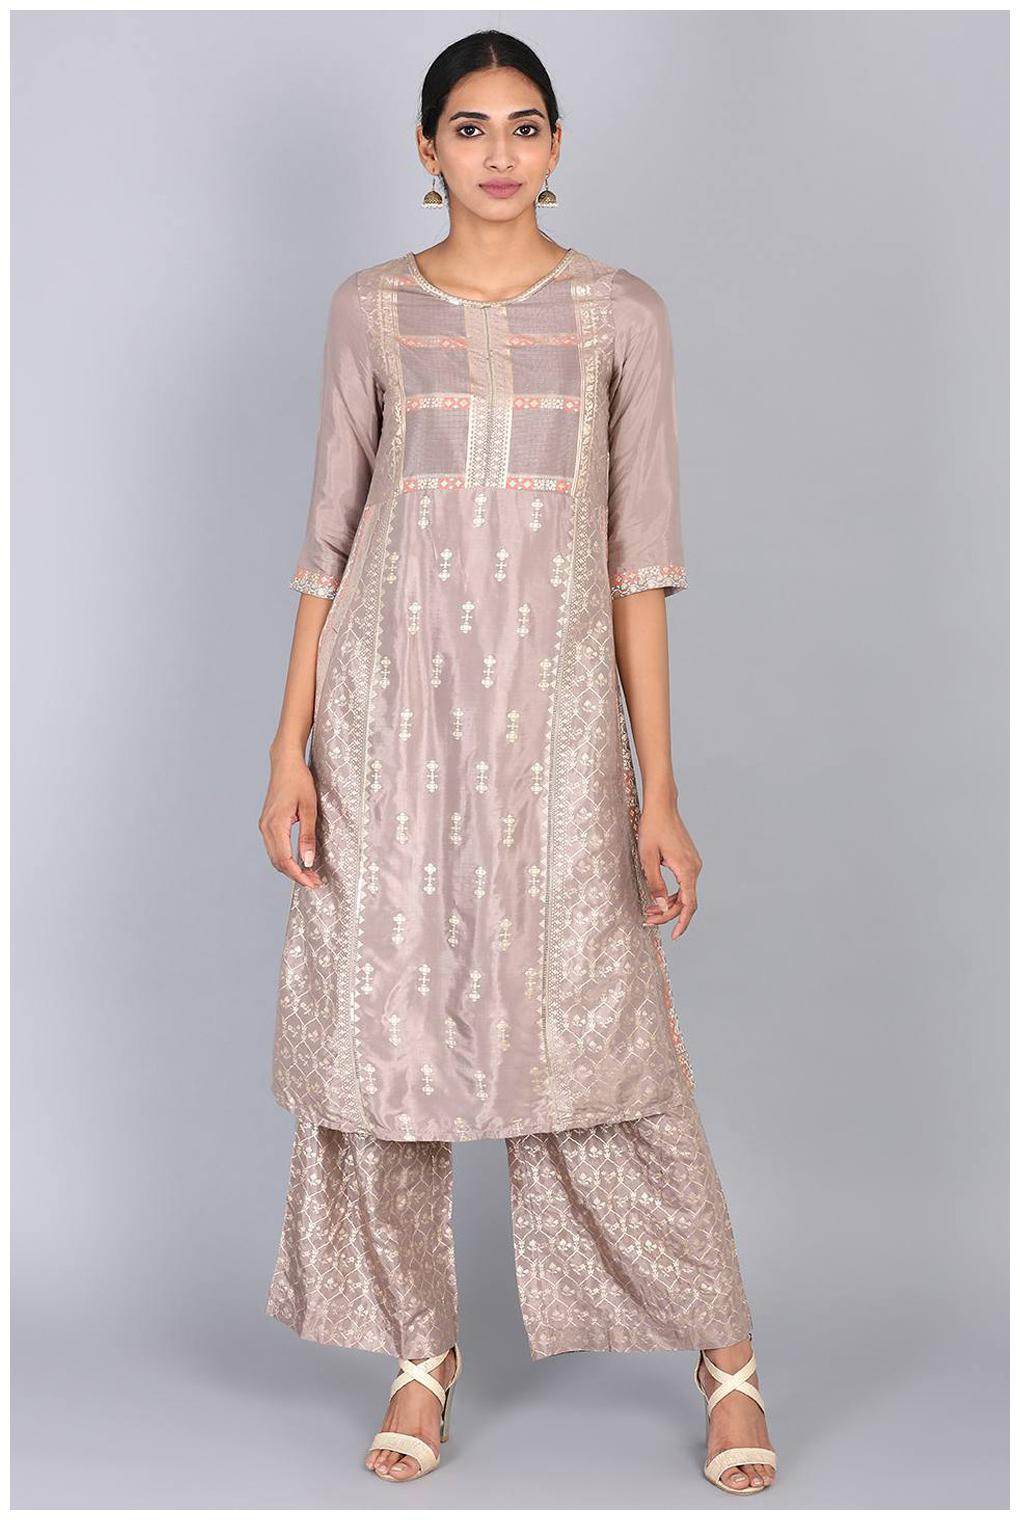 https://assetscdn1.paytm.com/images/catalog/product/A/AP/APPW-FOR-WOMAN-TCNS6711004058BC3/a_0..JPG